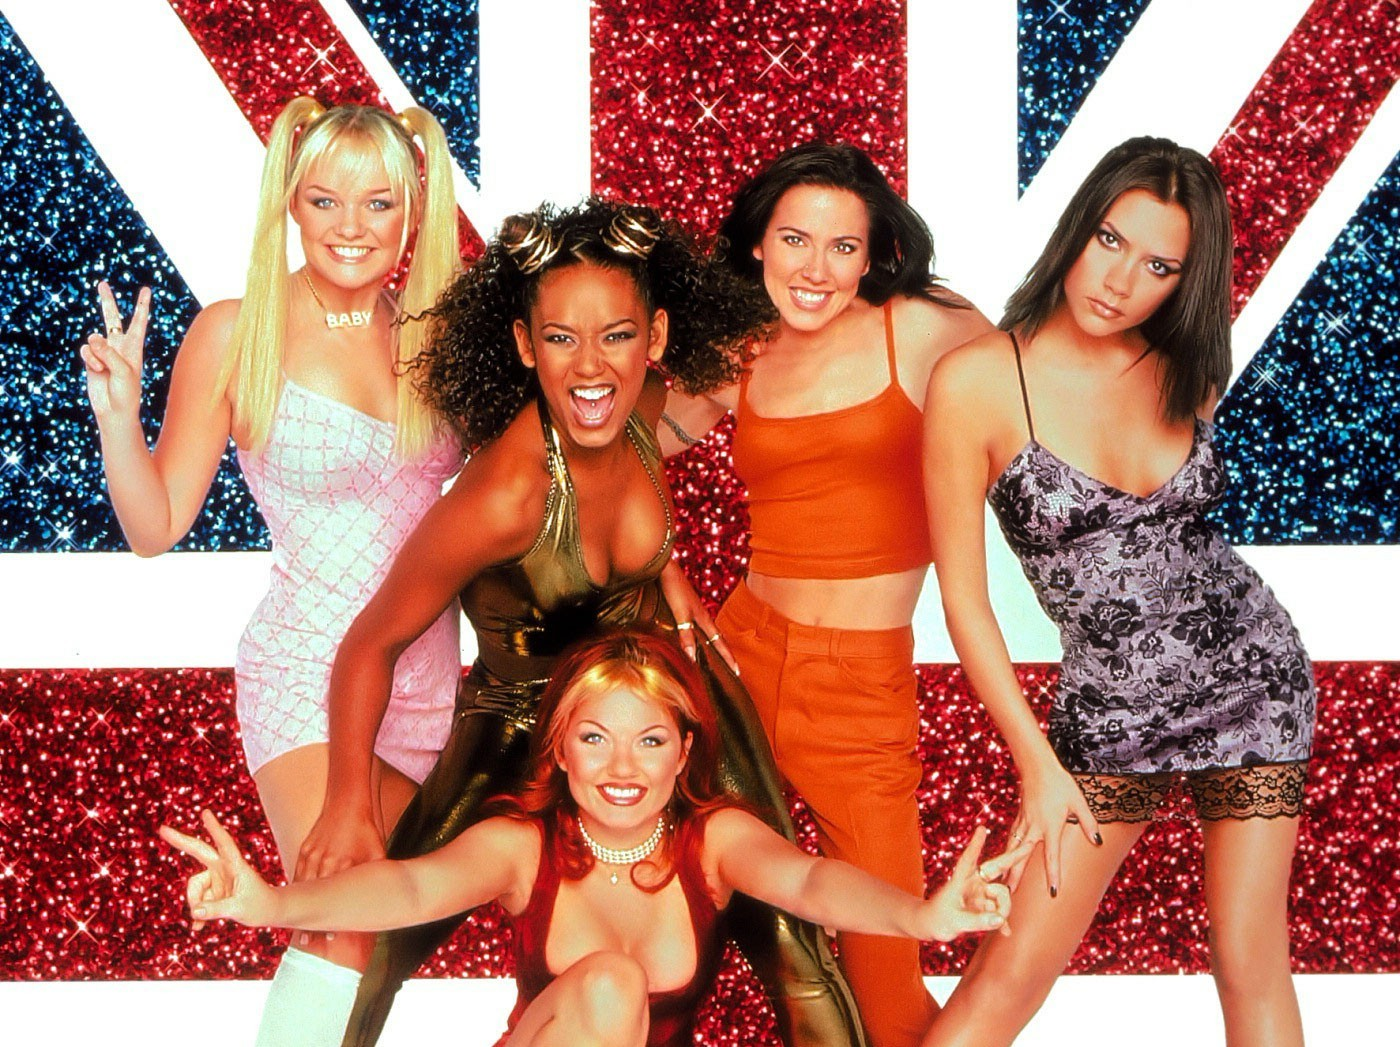 a55ca2cb2b9c 15 signs you were a die hard Spice Girls fan · The Daily Edge